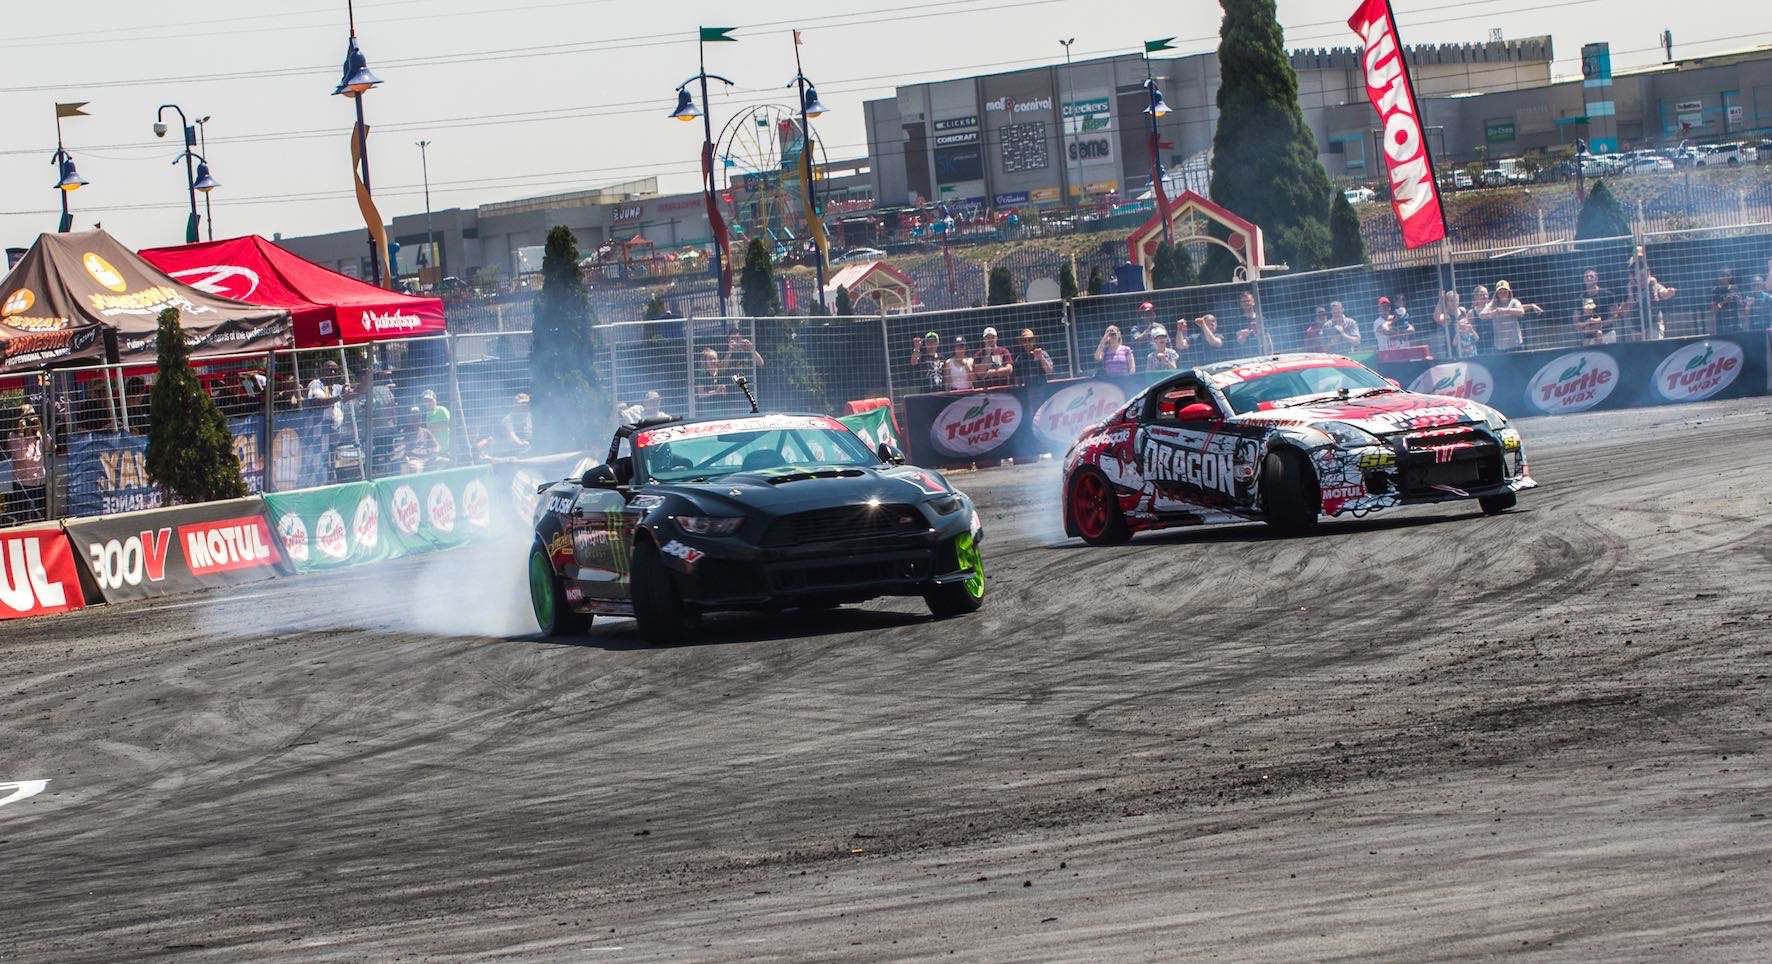 Jason Webb drifting his way to victory in the 2018 SupaDrift Series championship